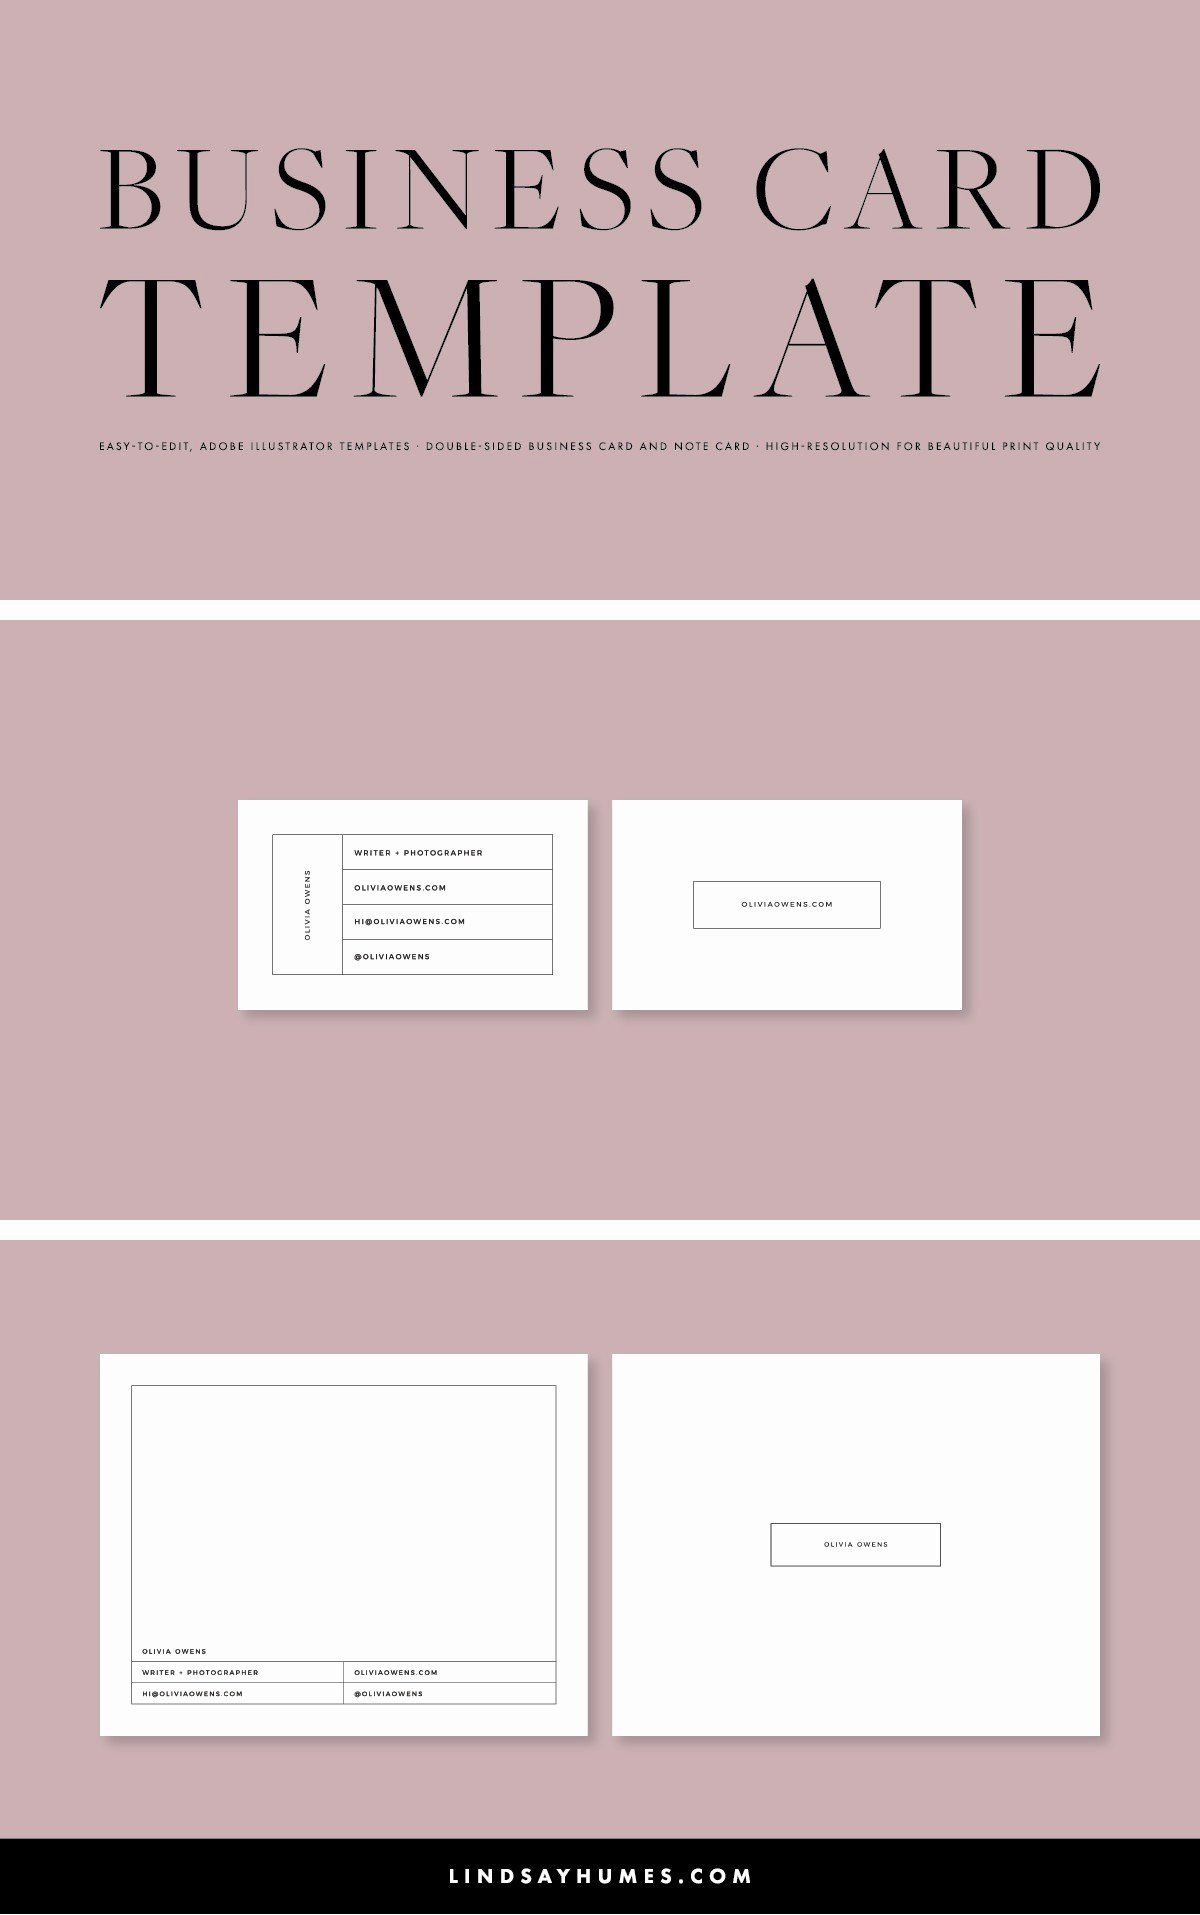 adobe illustrator business card templates inspirationa adobe and business card illustrator template